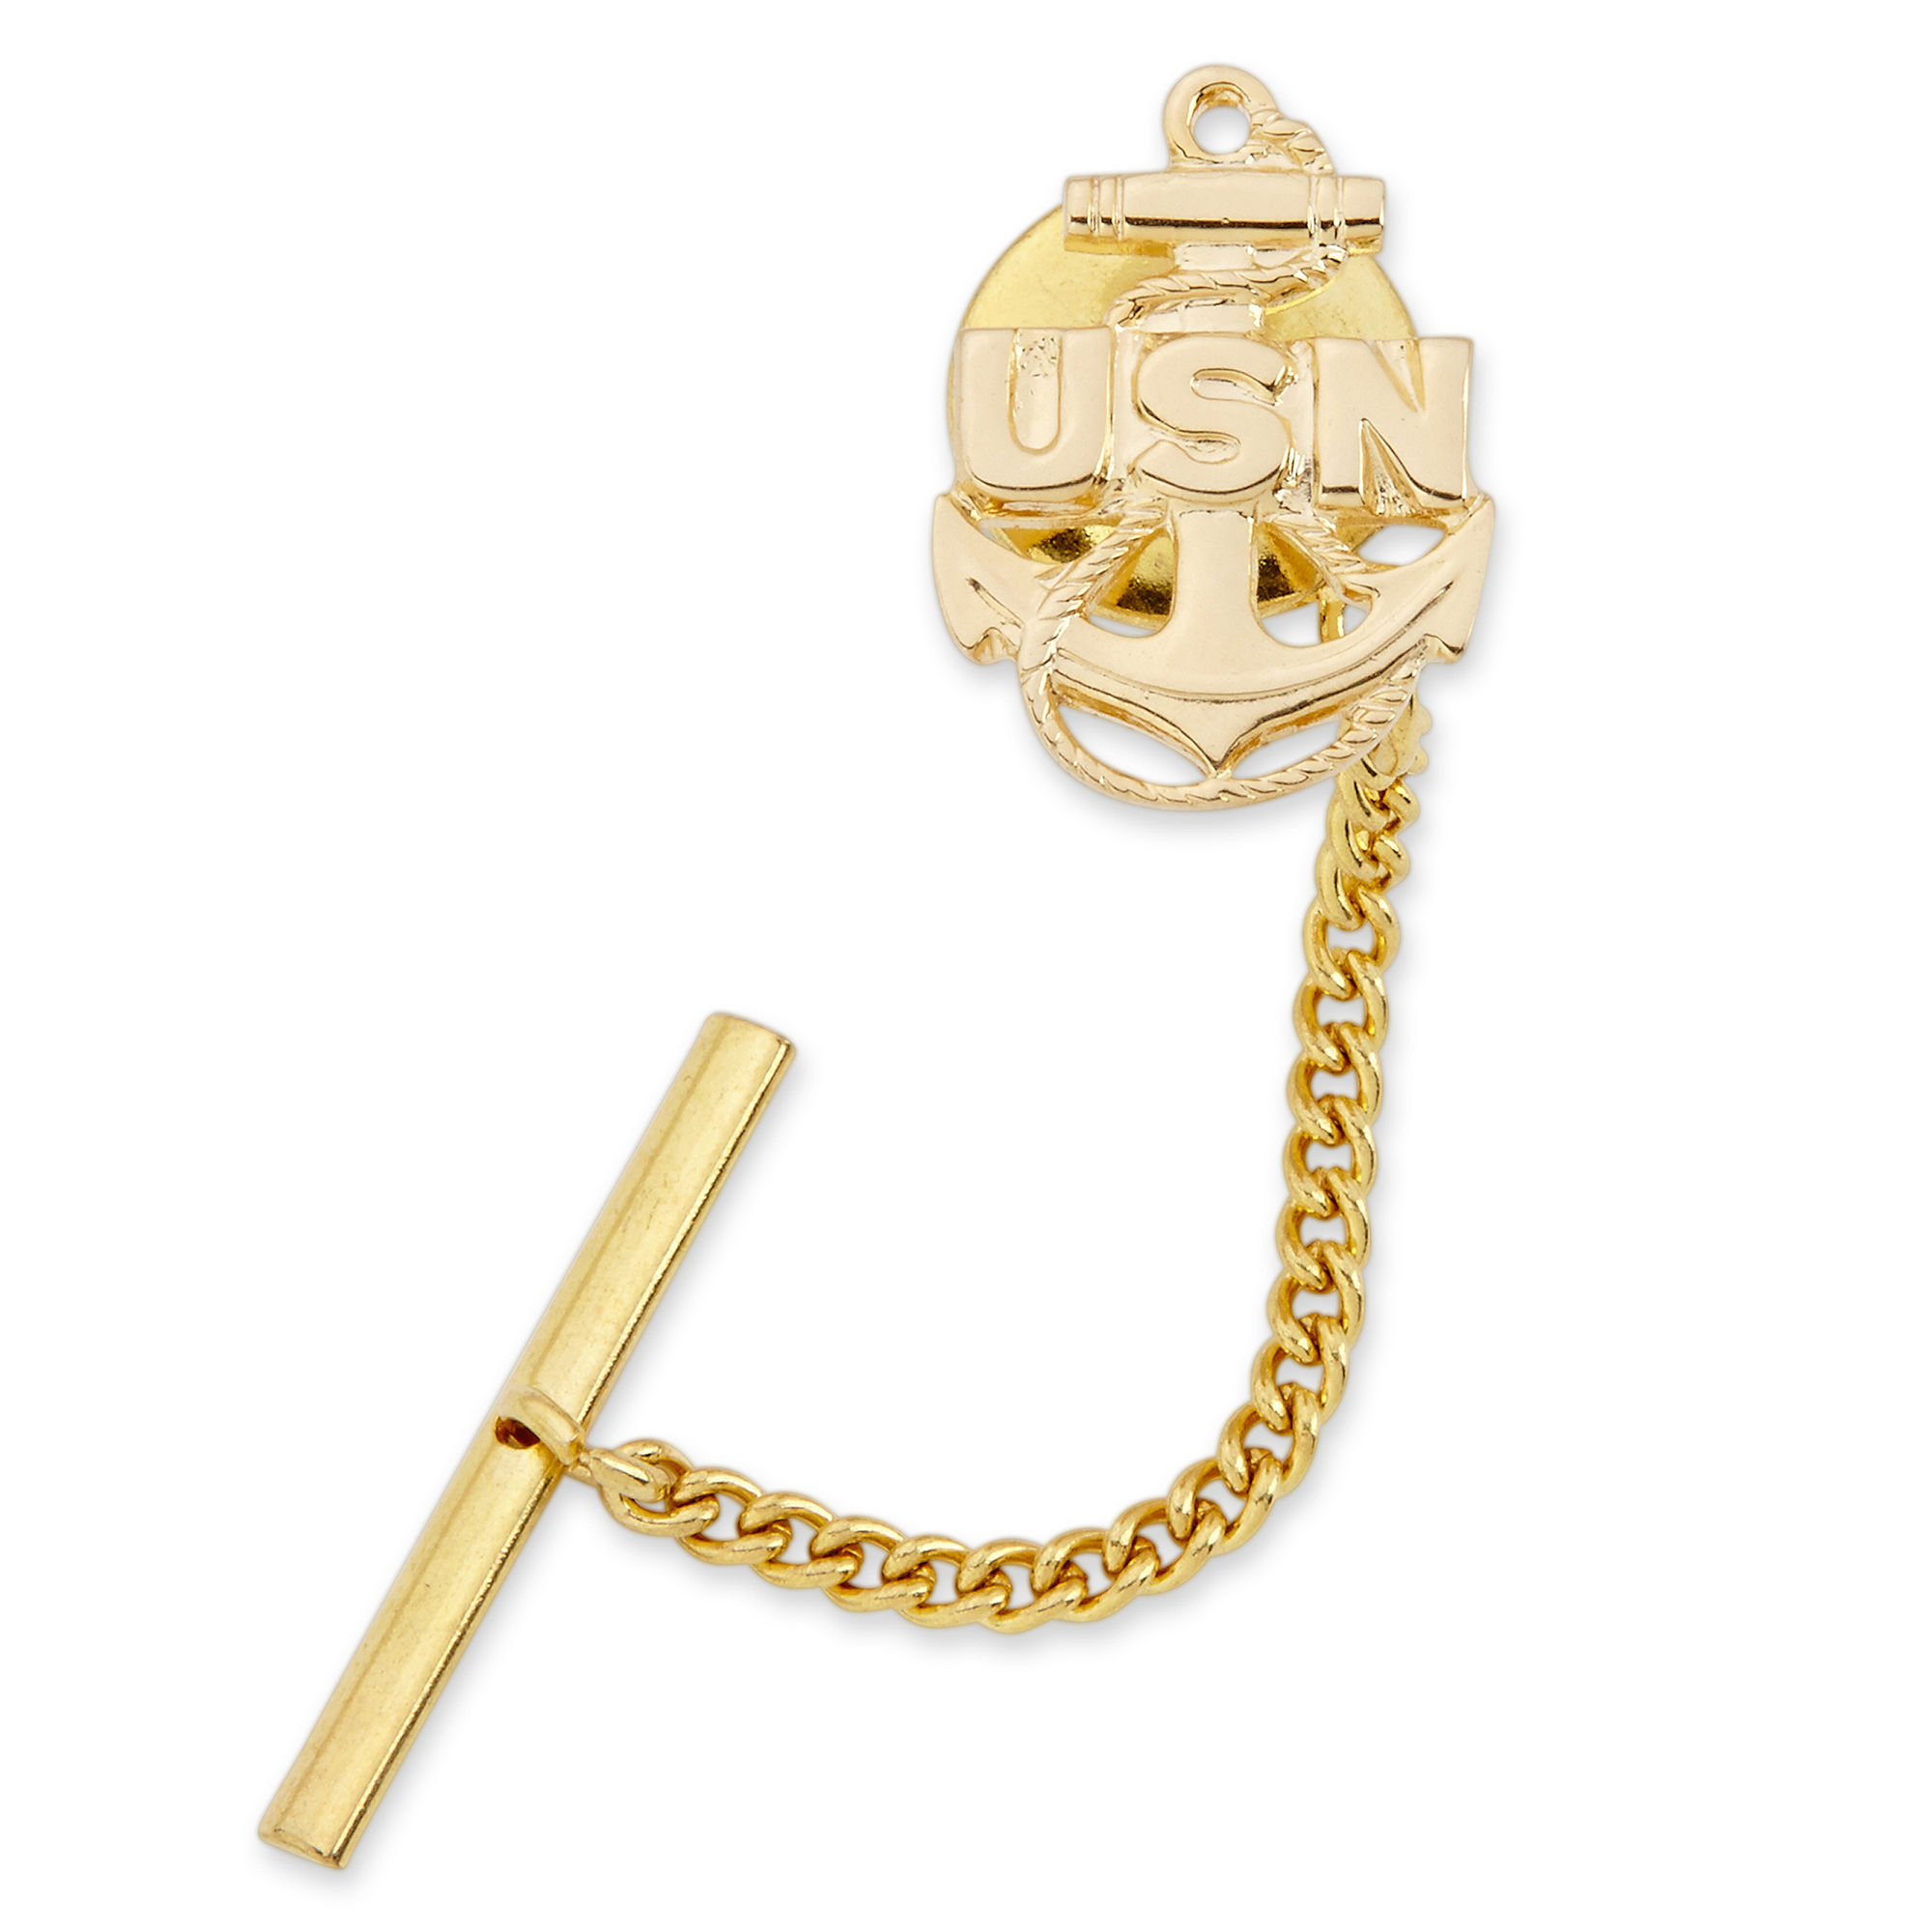 US Navy Gold-Plated Tie Tack